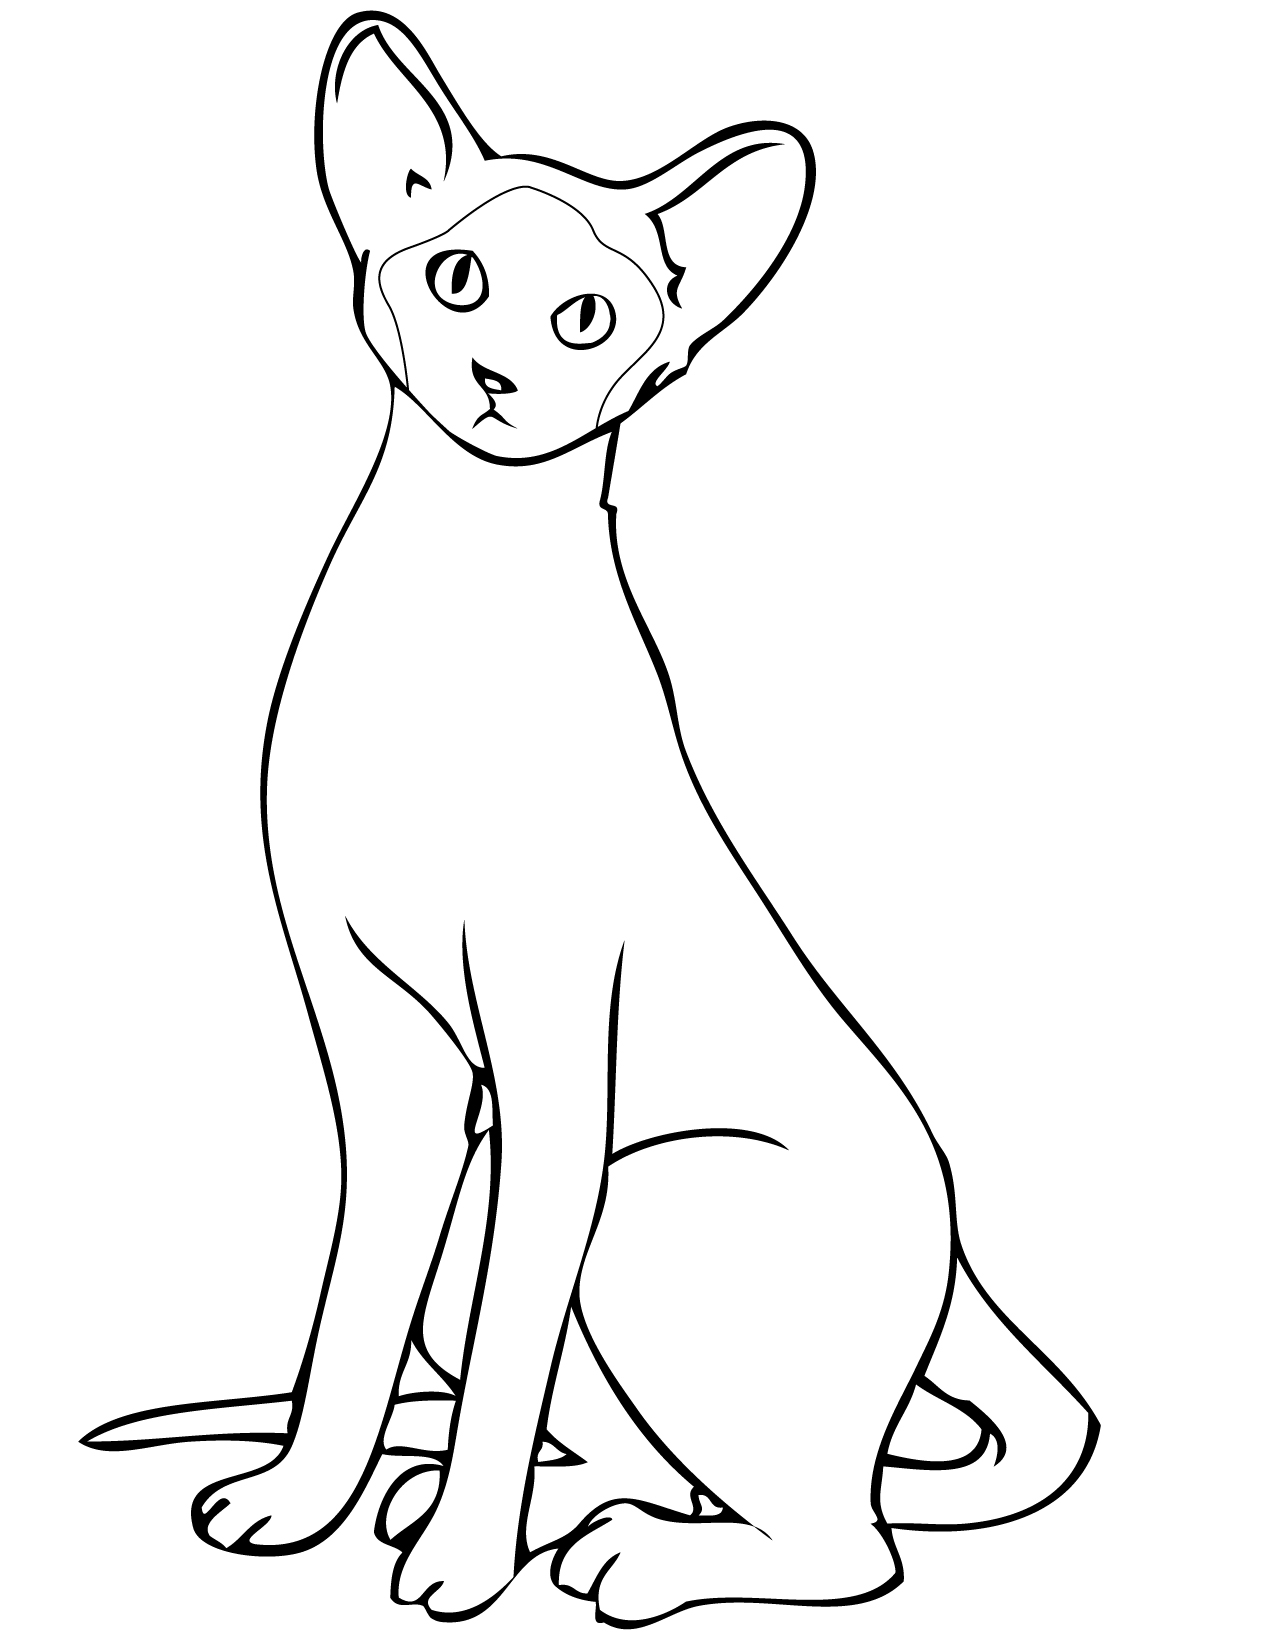 Siamese Cat Coloring Page At Getcolorings